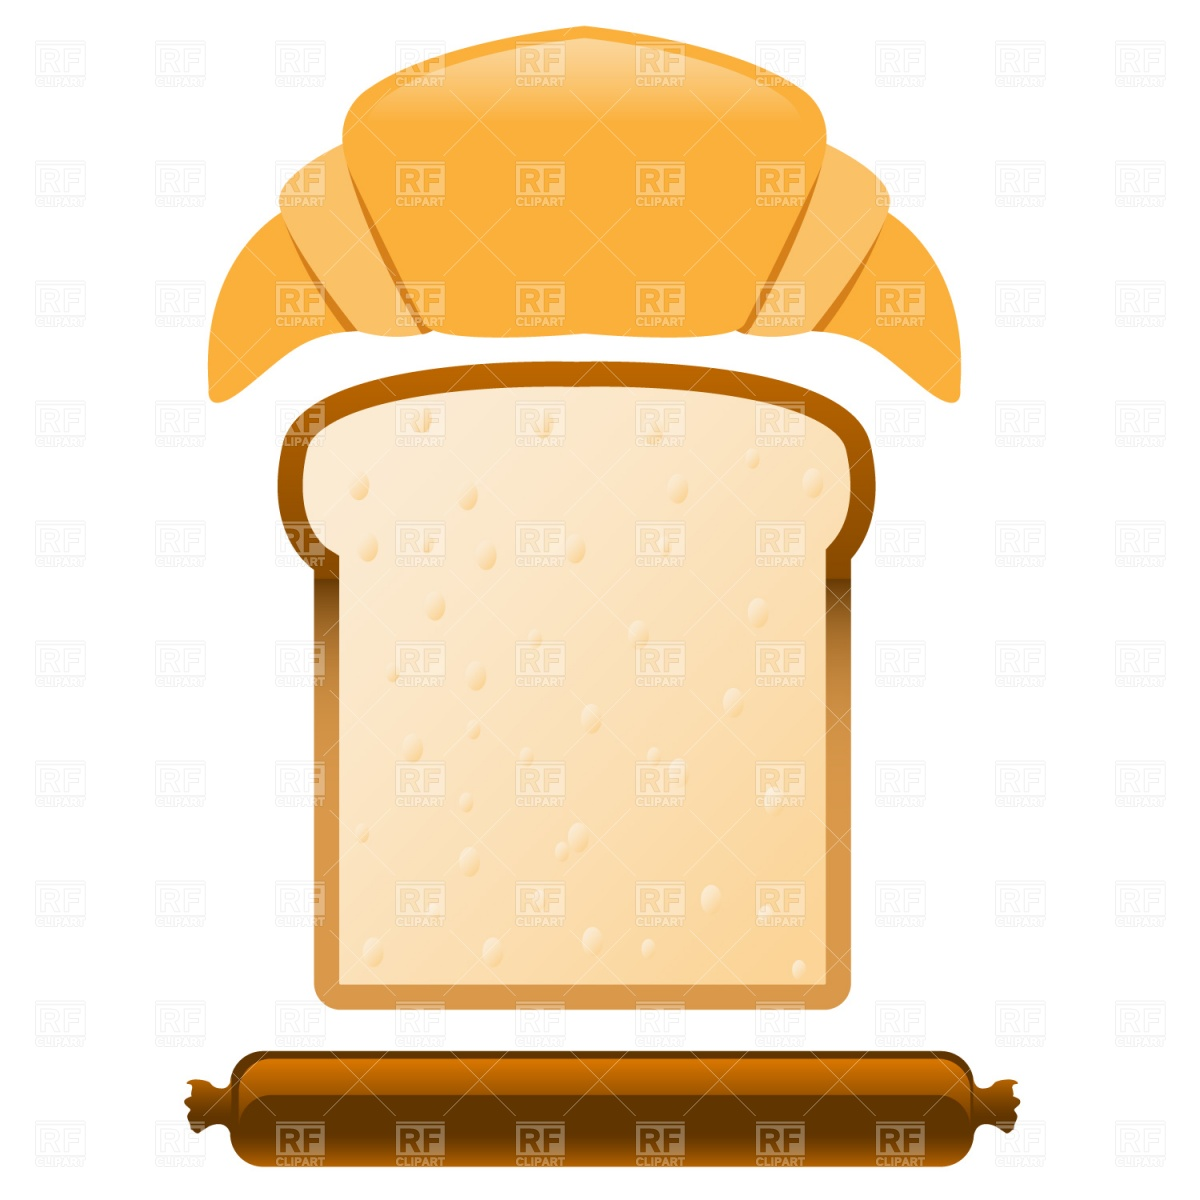 Croissant, slice of bread and sausage Stock Vector Image.